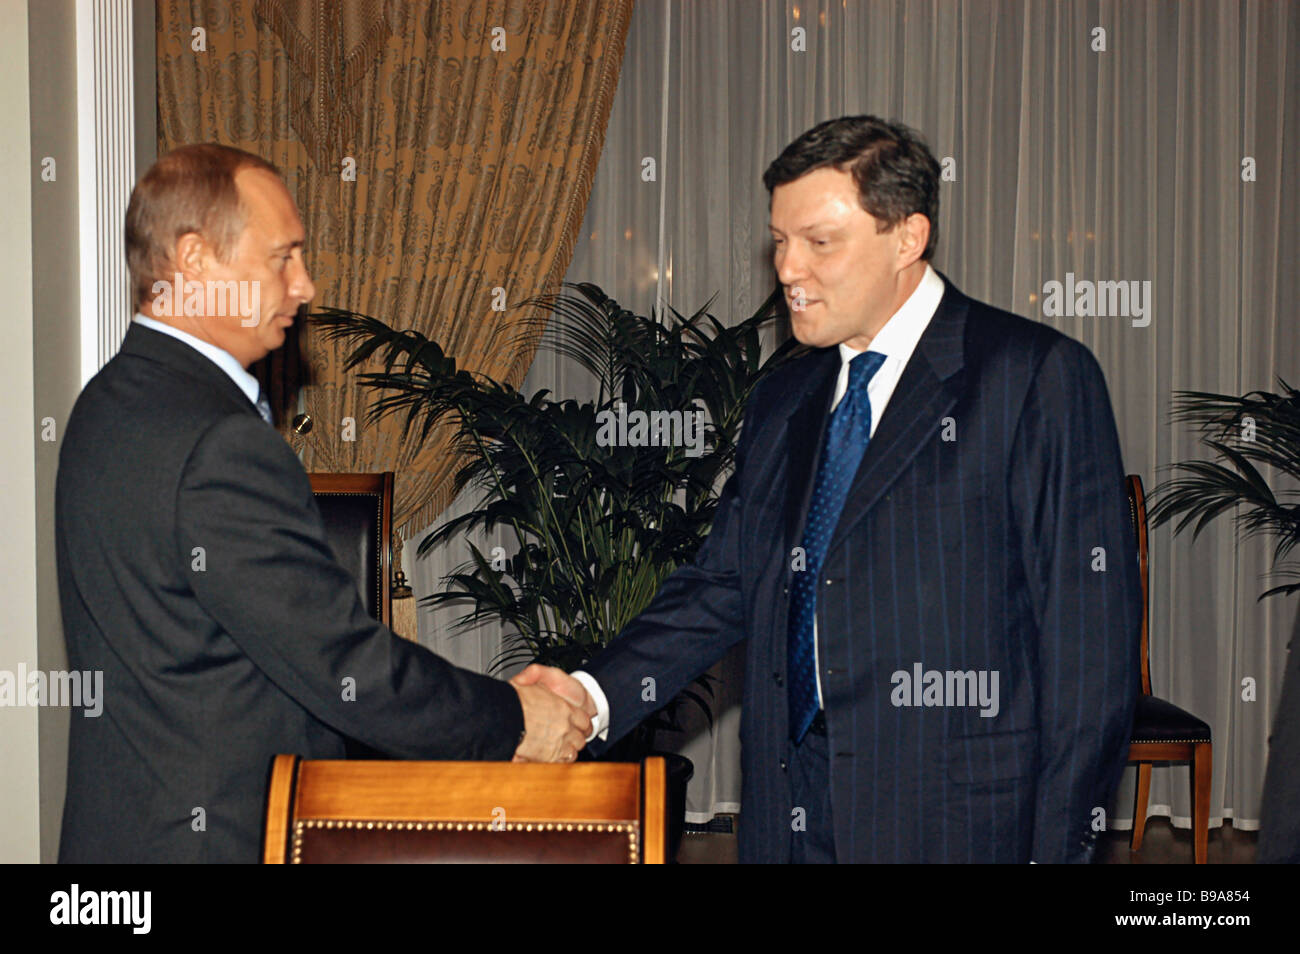 Russian president vladimir putin and grigory yavlinsky yabloko stock russian president vladimir putin and grigory yavlinsky yabloko parliamentary group leader exchanging greetings during a nuclear kristyandbryce Images